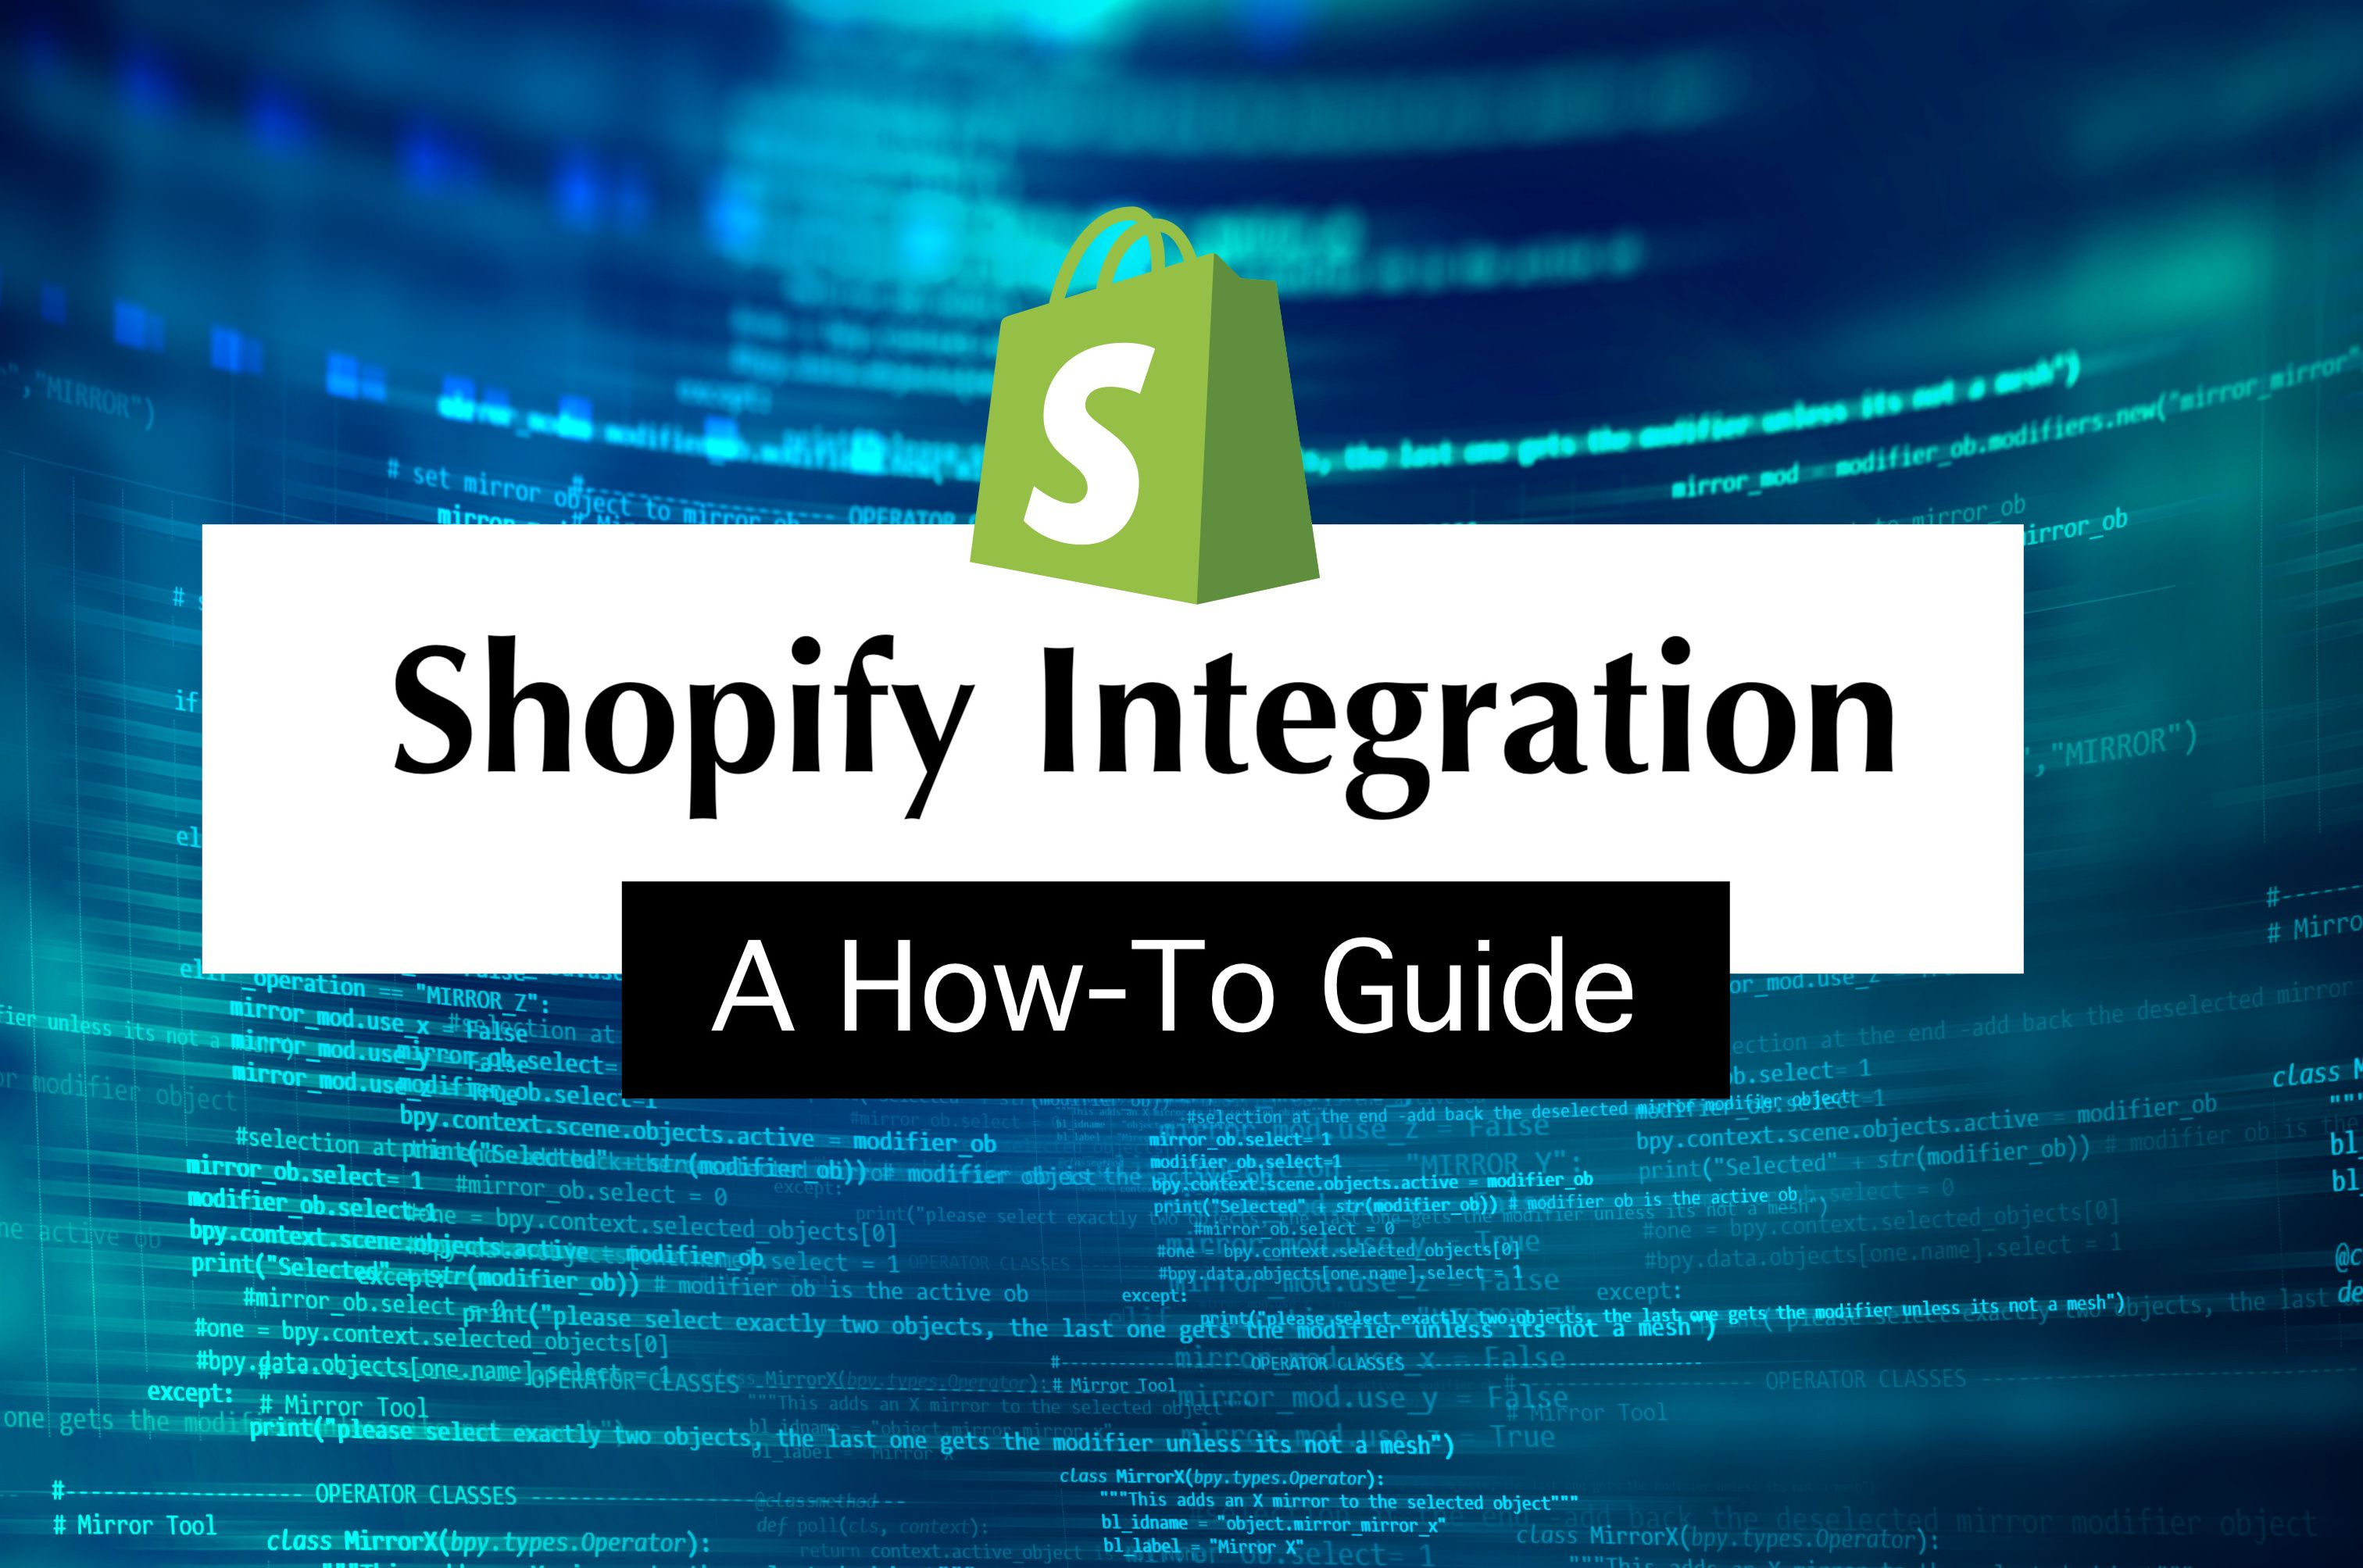 /how-to-build-a-shopify-integration-tm4k33x6 feature image